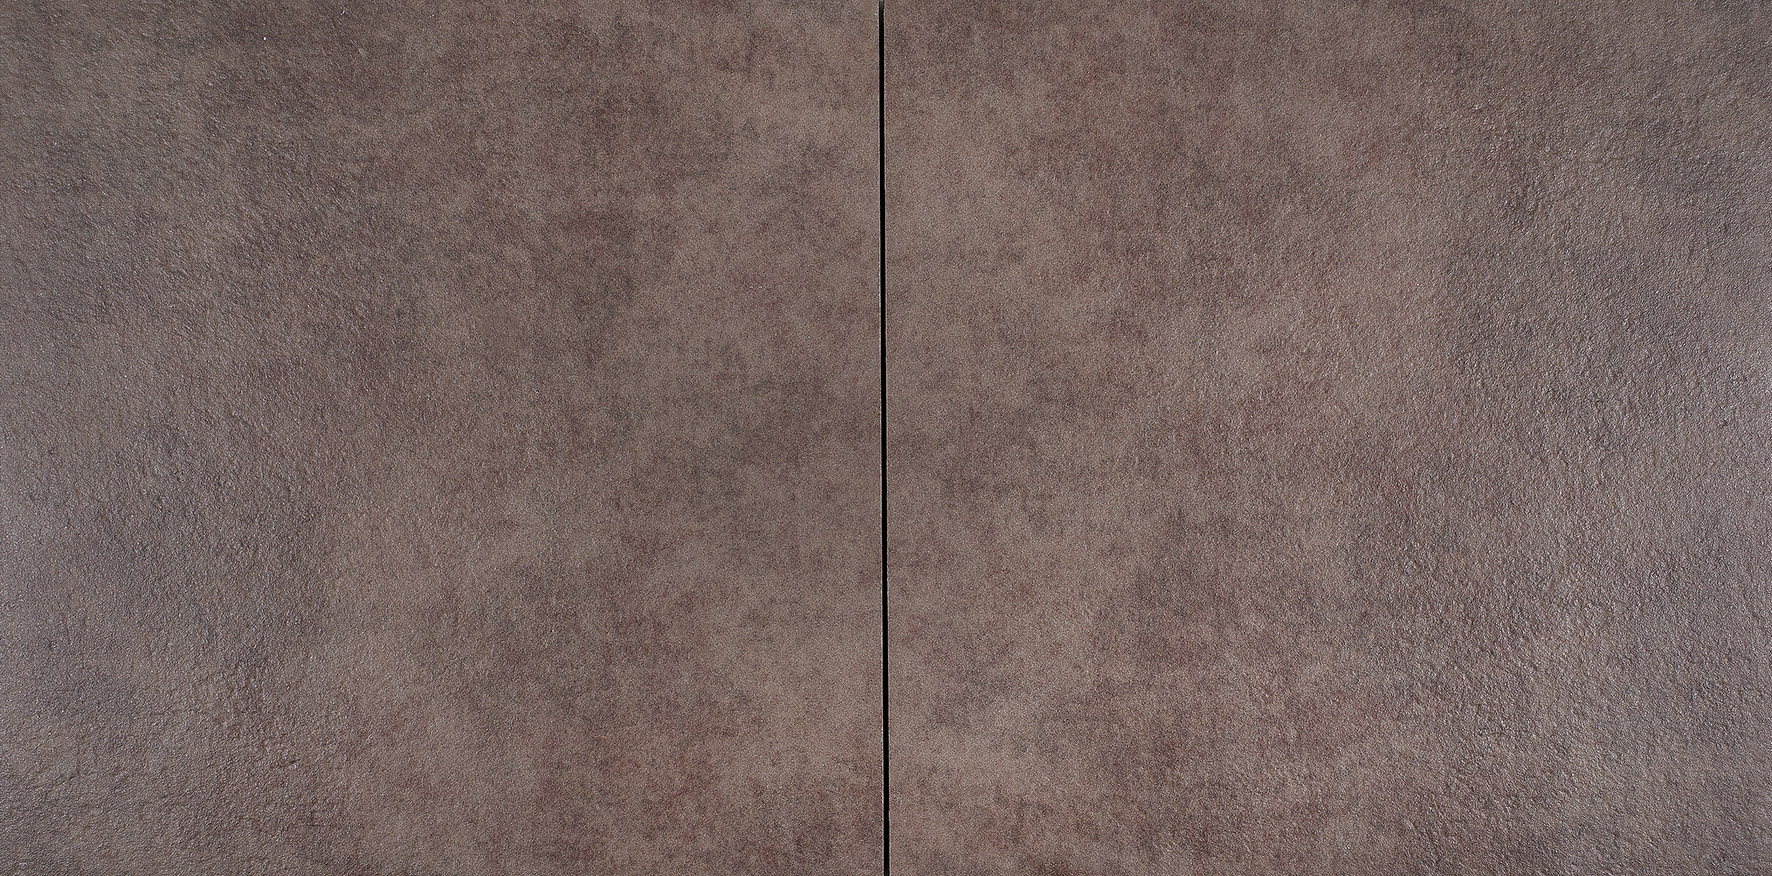 Gardenlux | Cera4line light 60x60x4 | Stone Brown